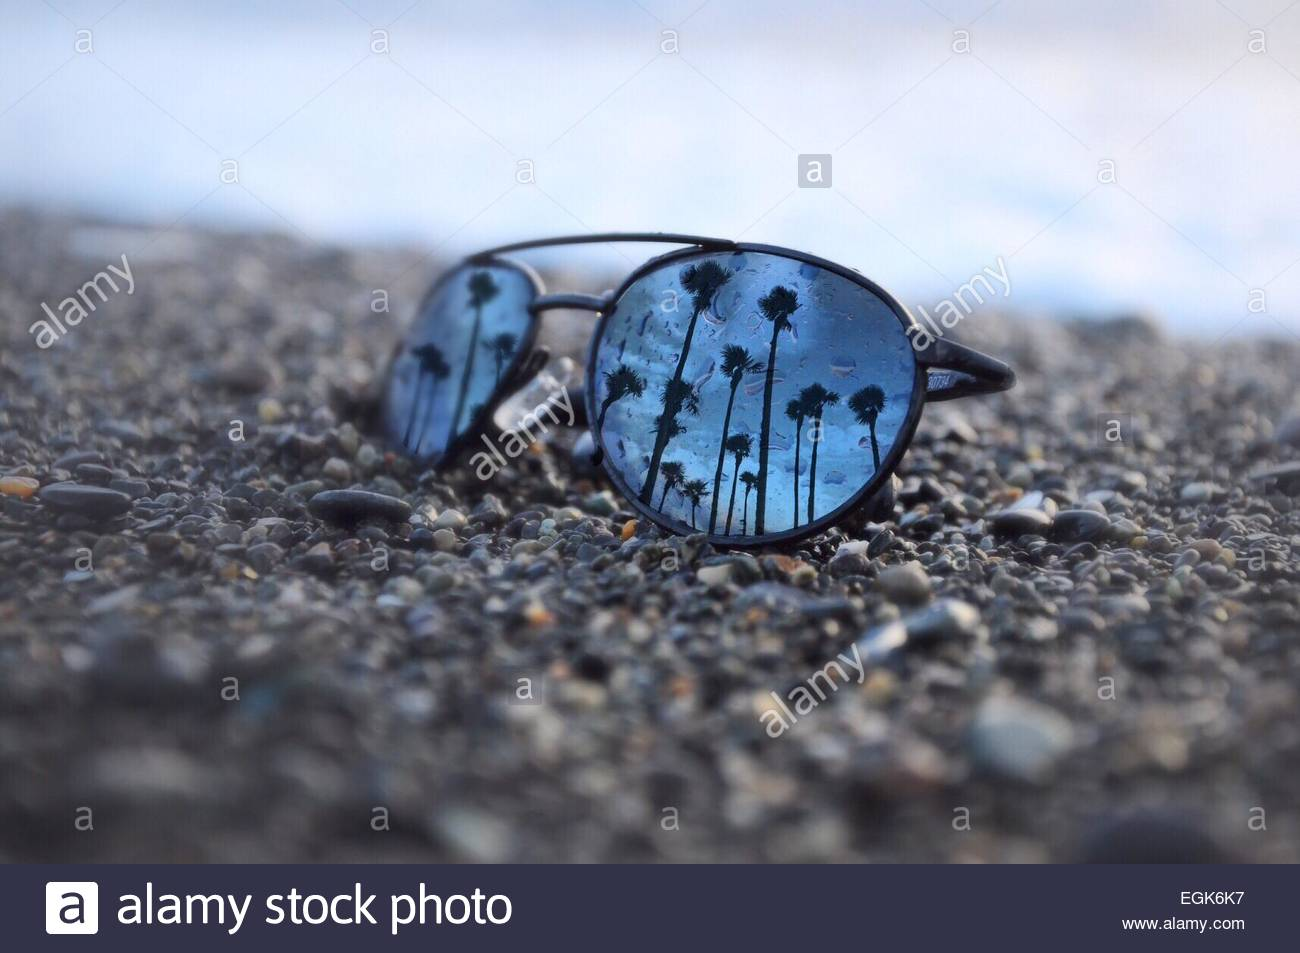 07dbe603a1 Mirrored sunglasses on pebbled beach with reflection of palm trees against  sky